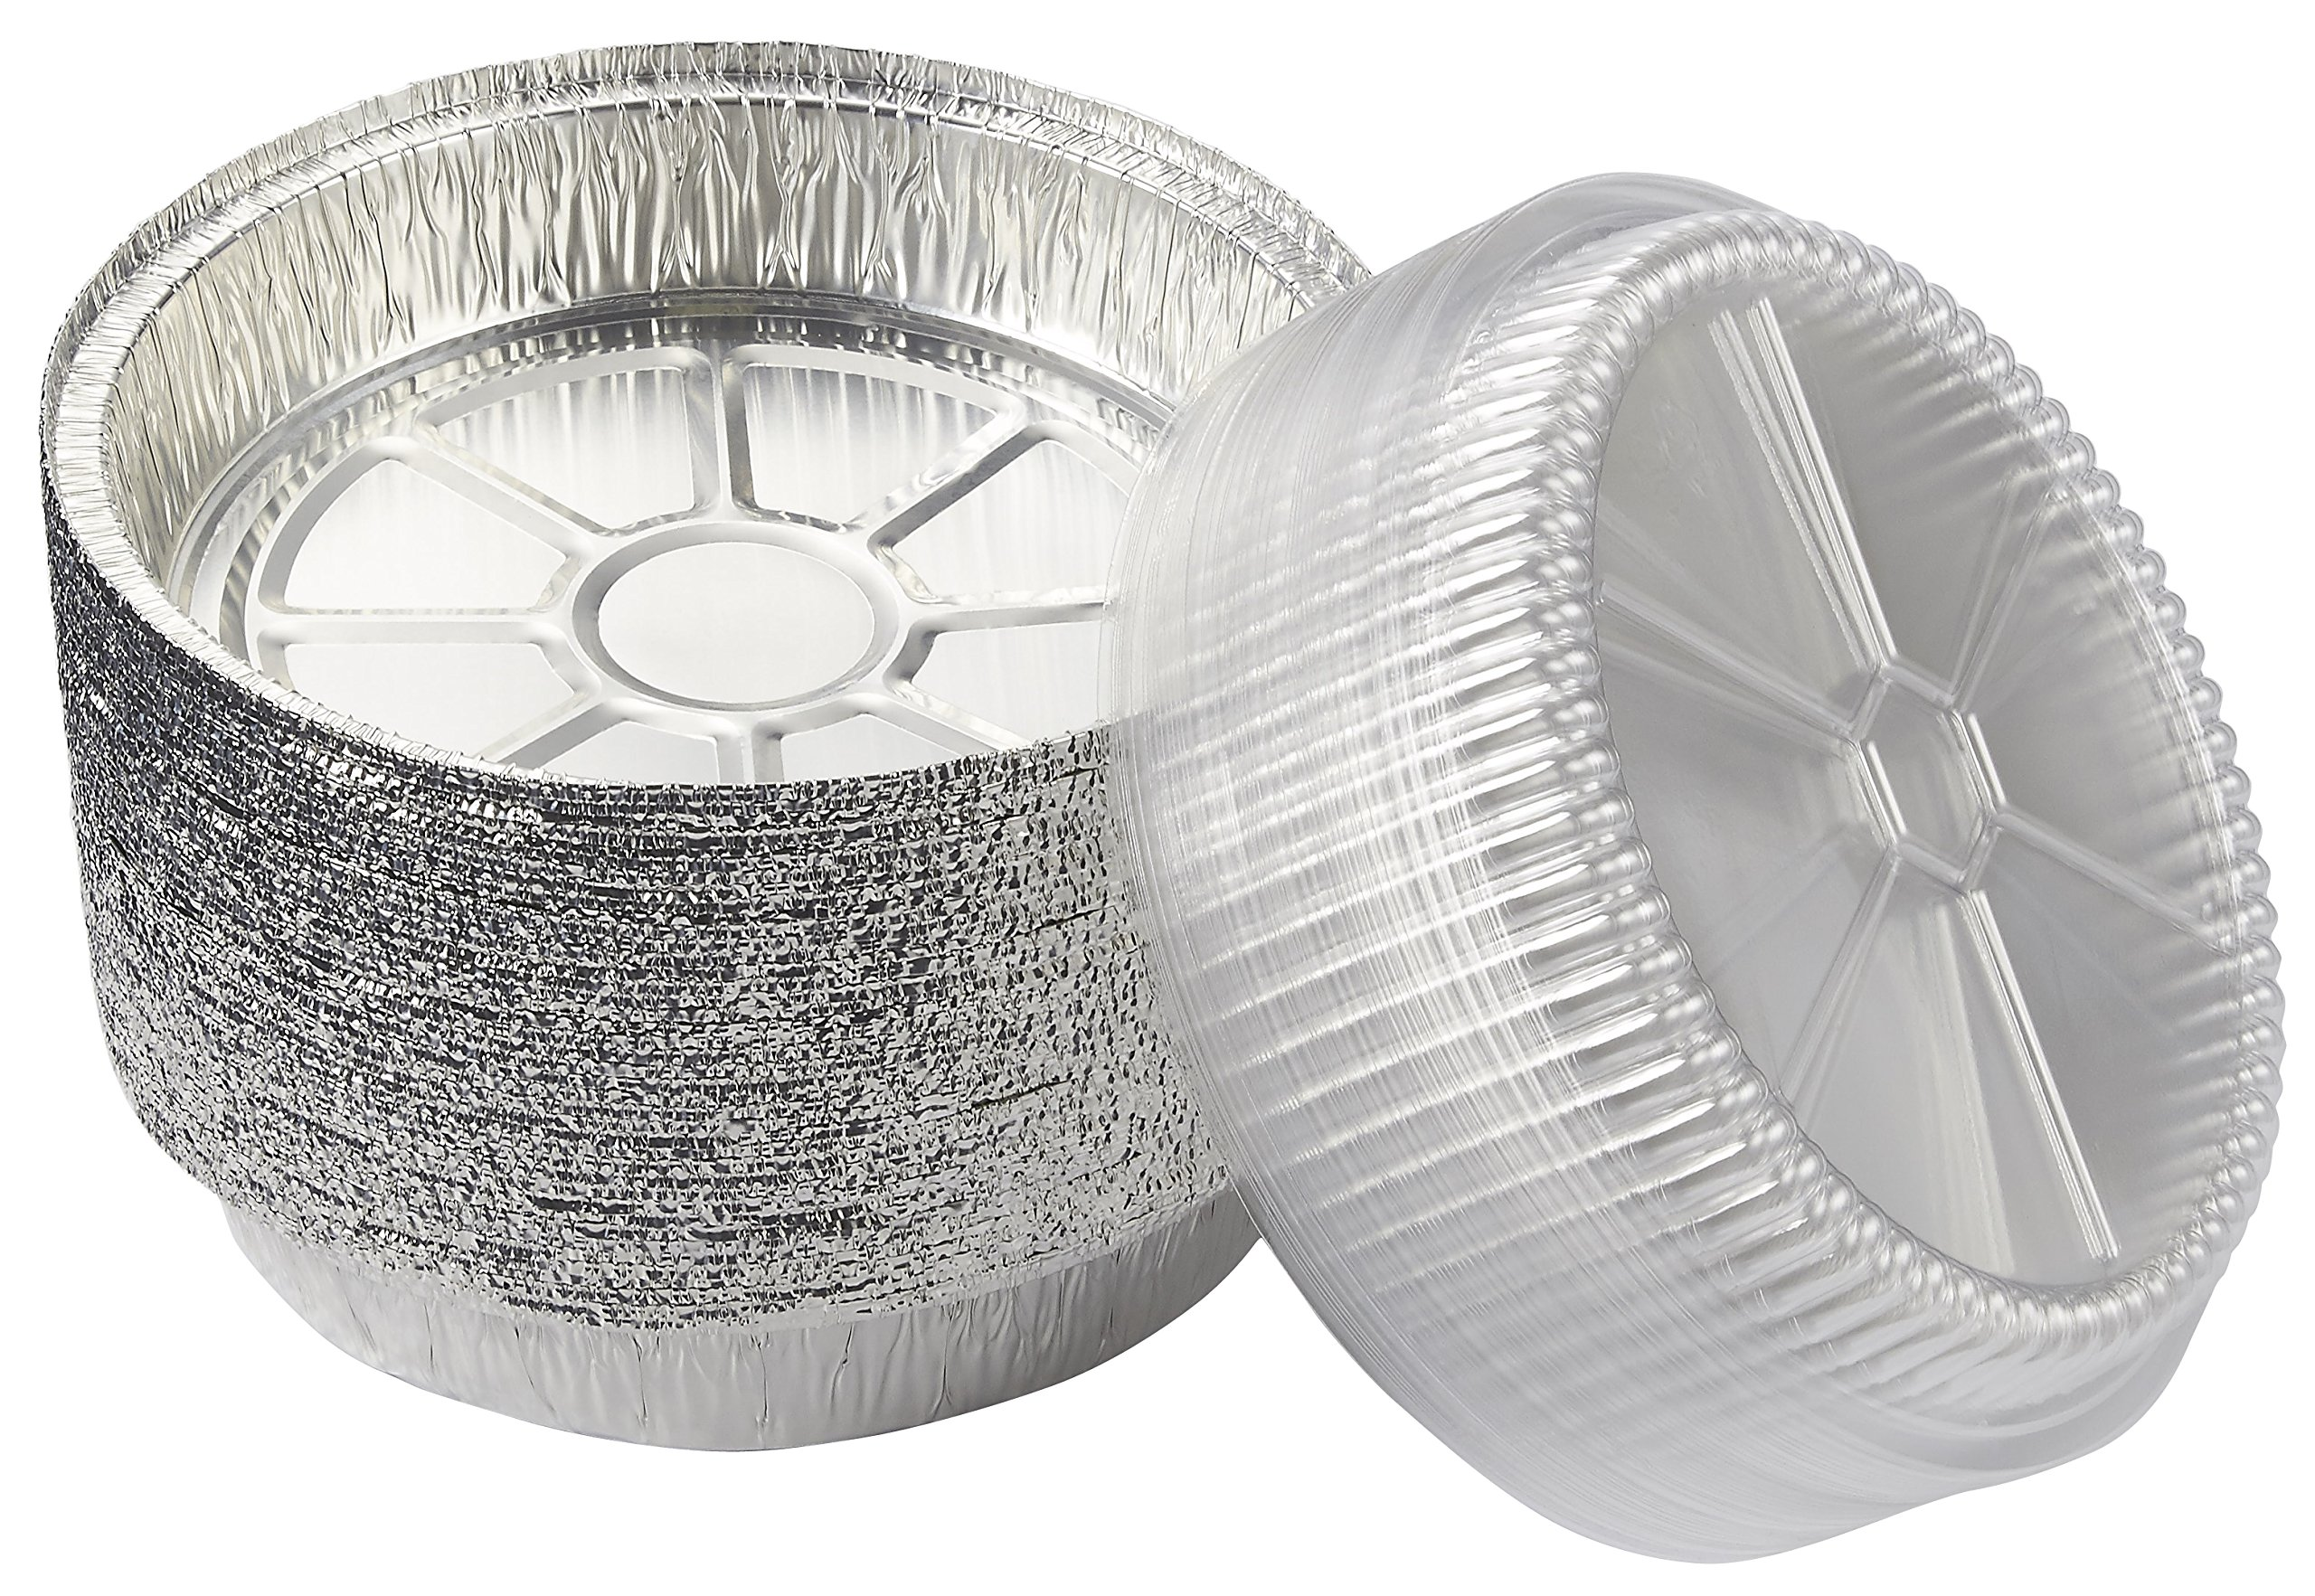 Round Aluminum Foil Pans - 40-Piece Take-Out Disposable Tin Pans with Plastic Clear Lids for Baking, Roasting, Broiling, Reheating, 9 Inches Diameter